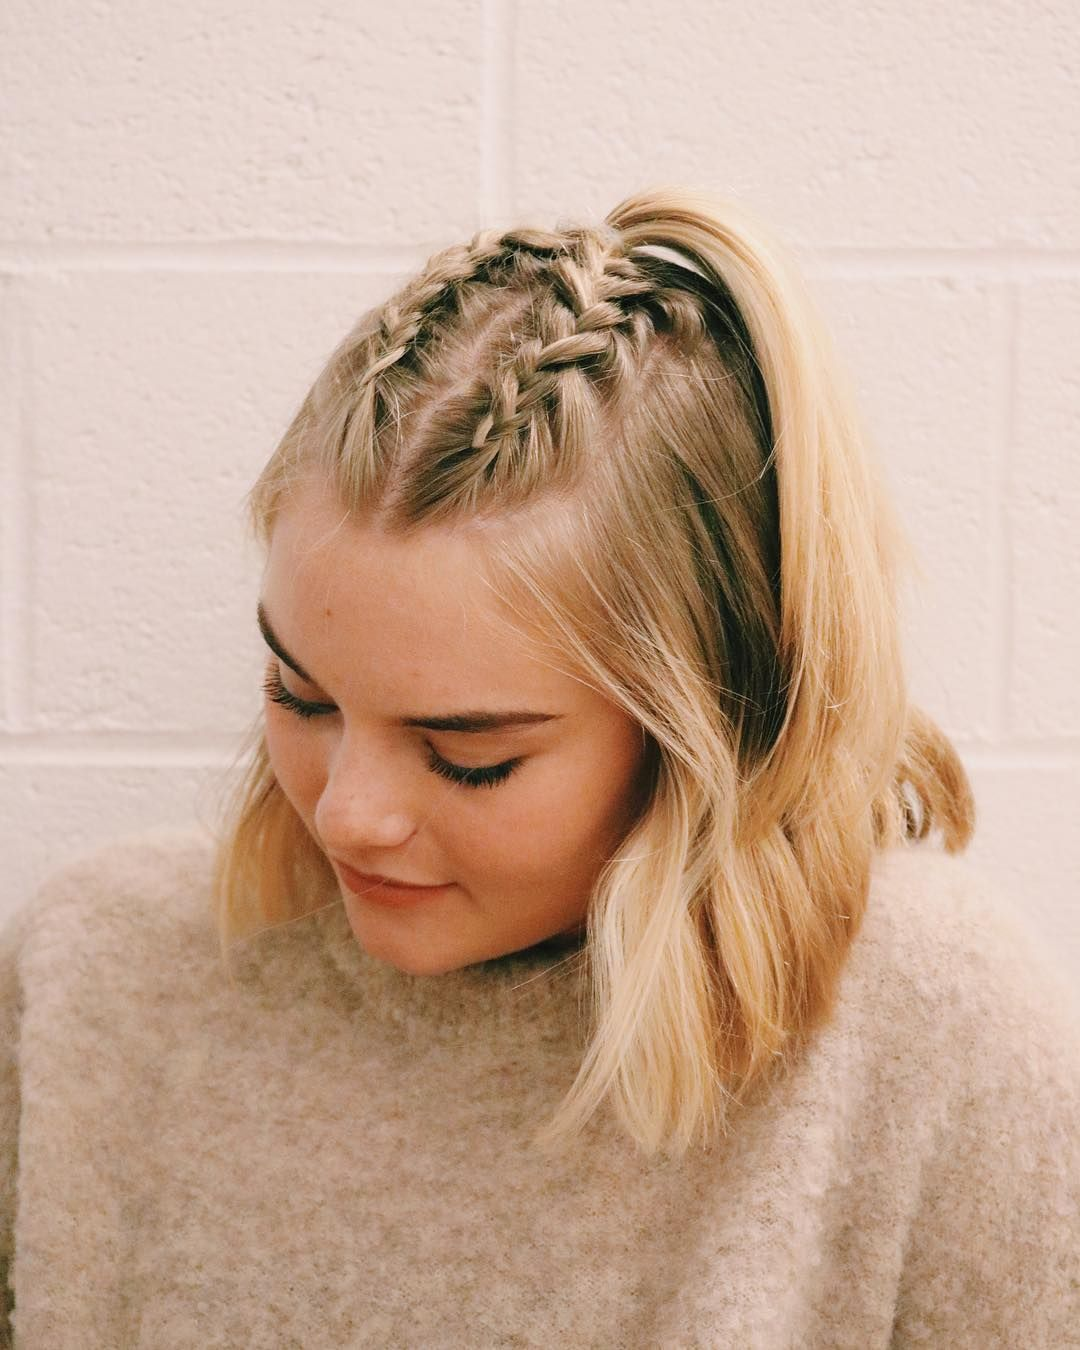 These gym hairstyles will last you through literally any workout